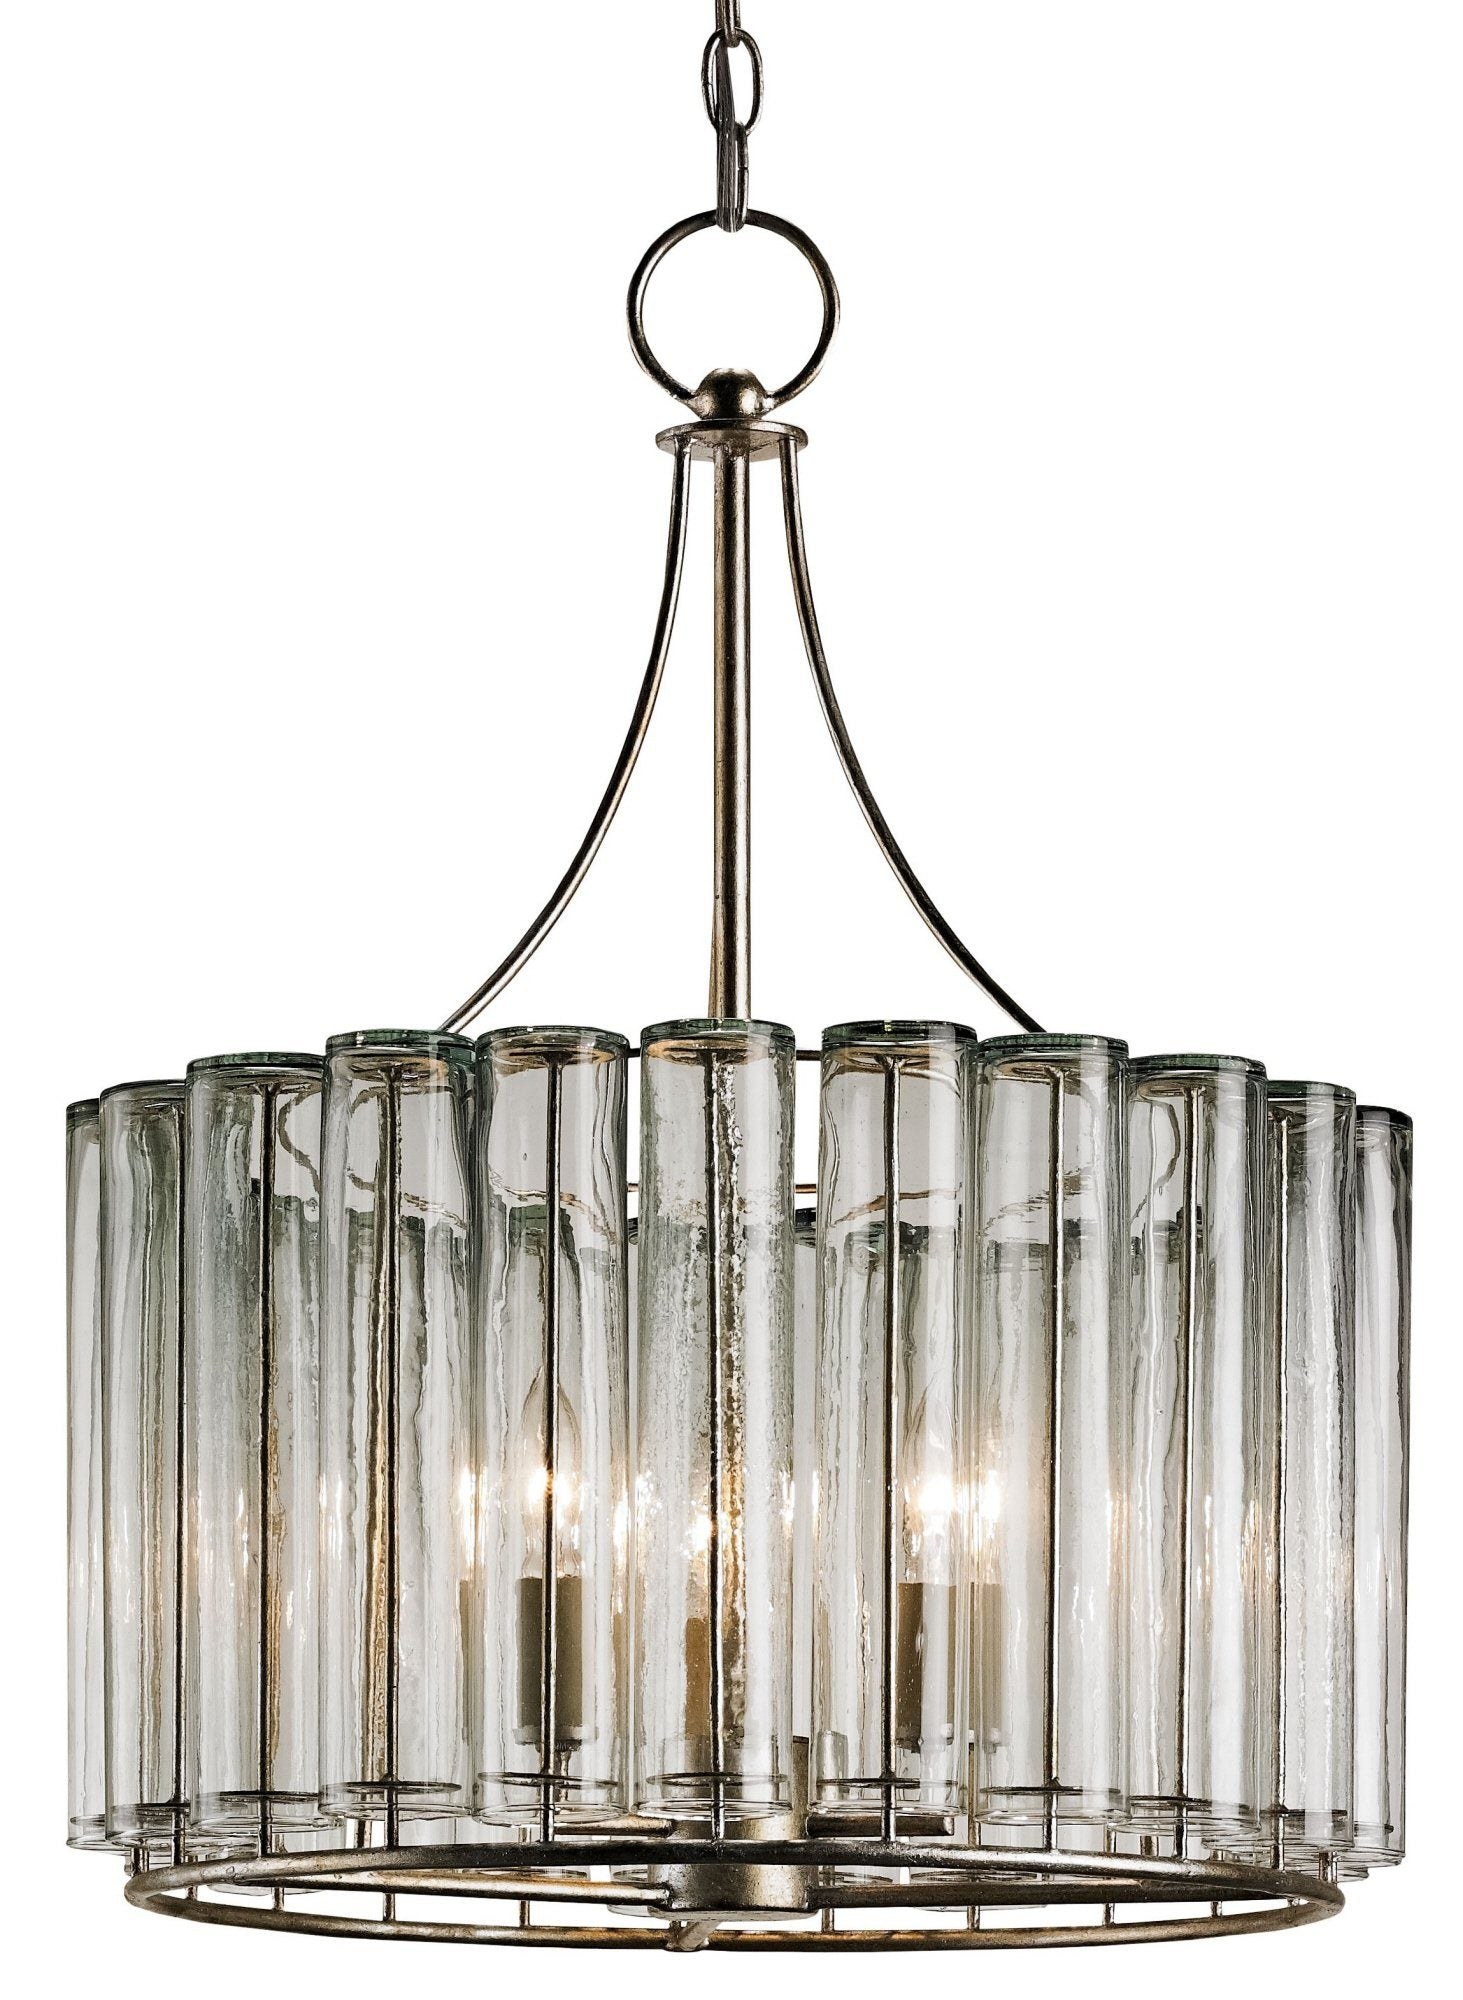 Currey and Company Bevilacqua Chandelier, Small 9293 - LOVECUP